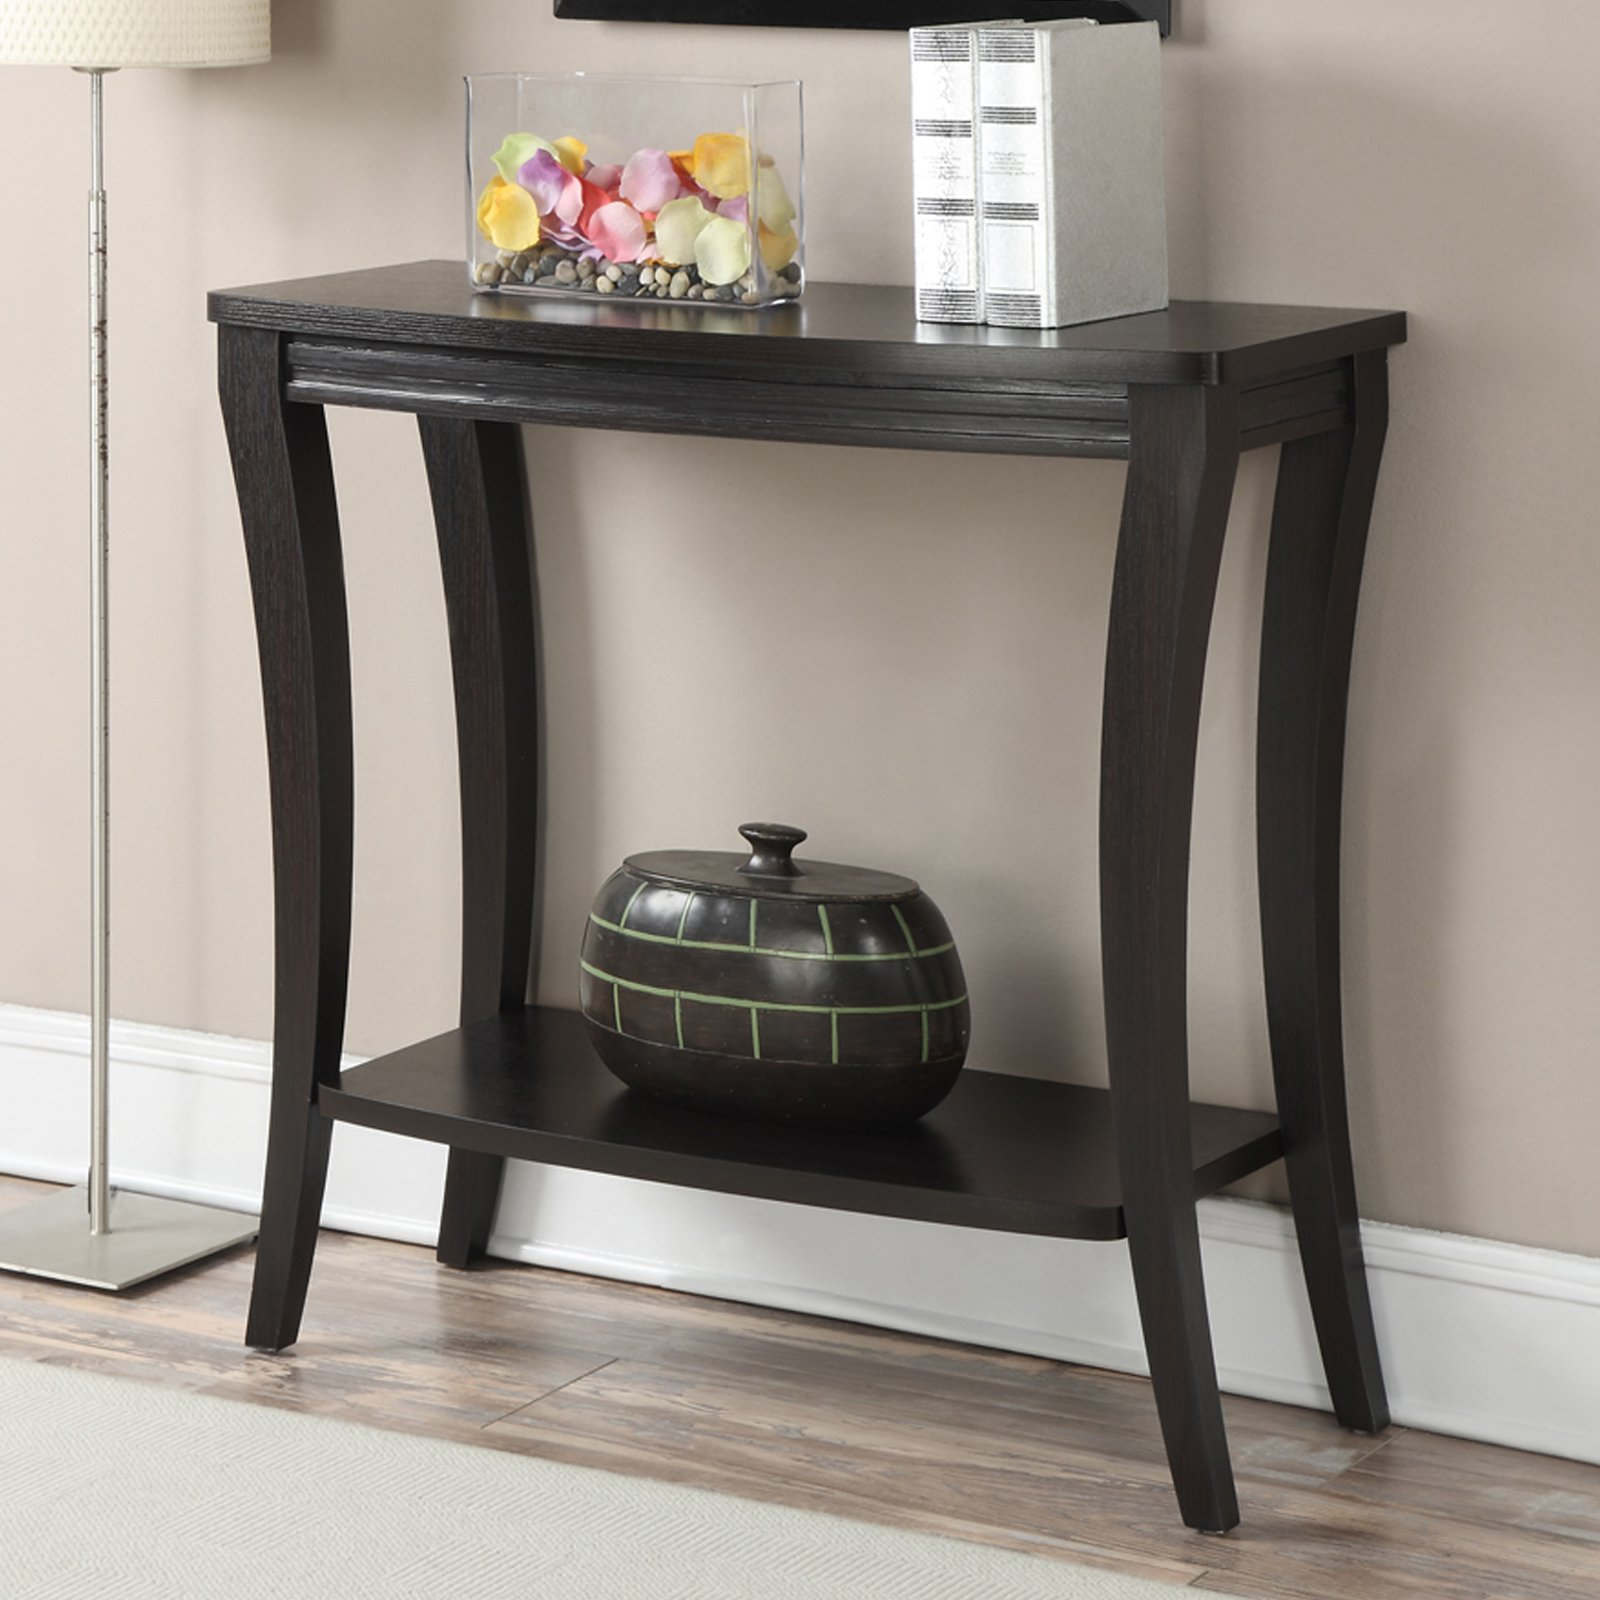 Convenience Concepts Newport Console Table with Shelf, Espresso by Convenience Concepts Inc